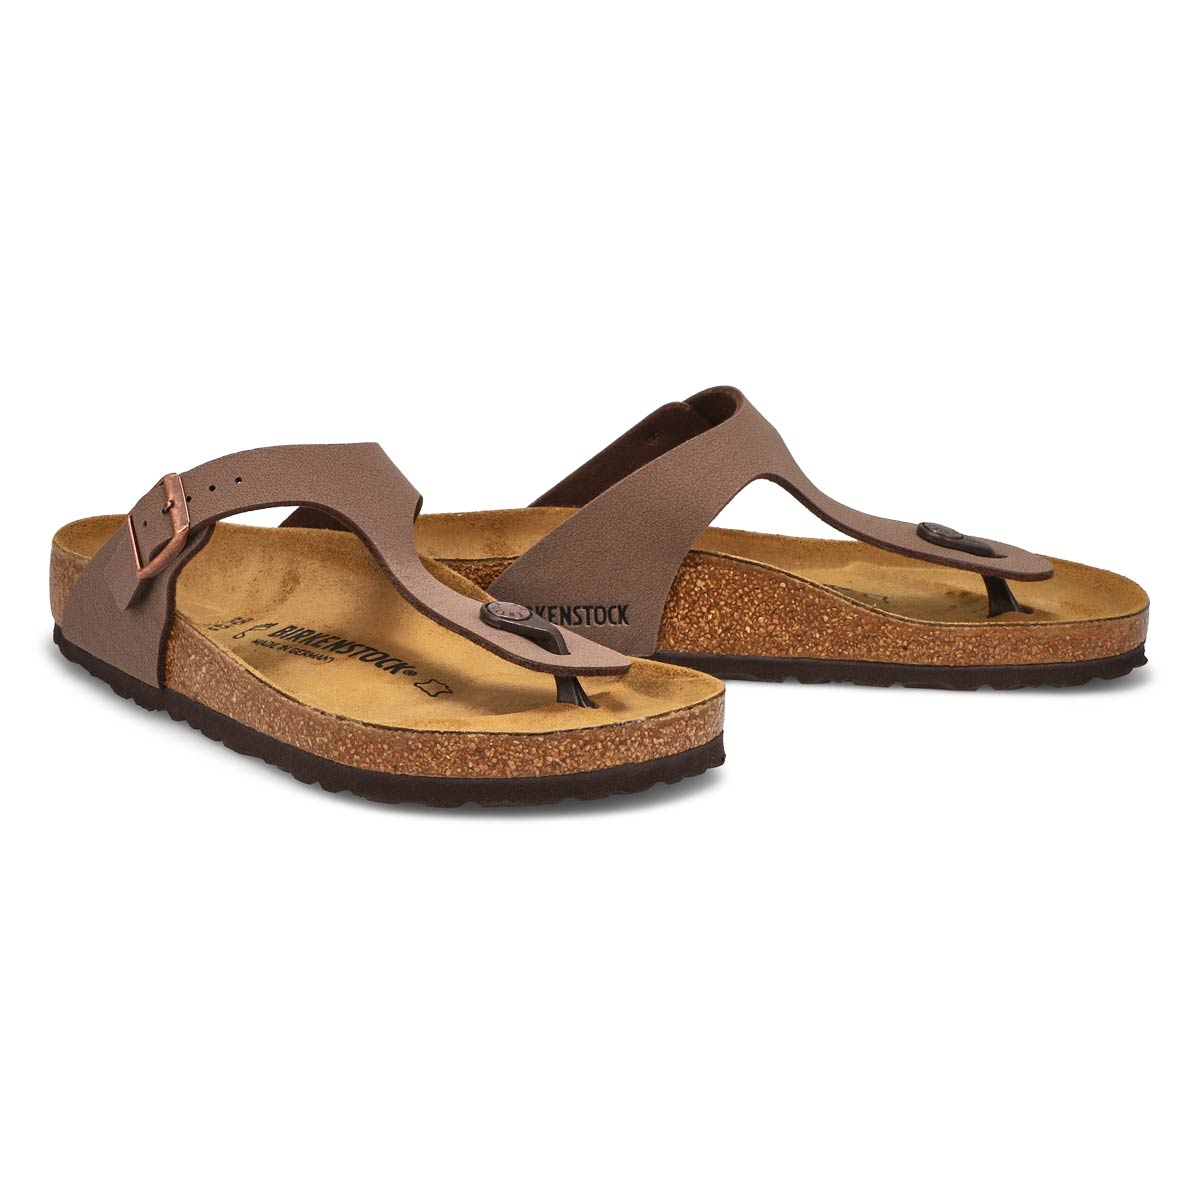 Women's GIZEH mocha thong sandals